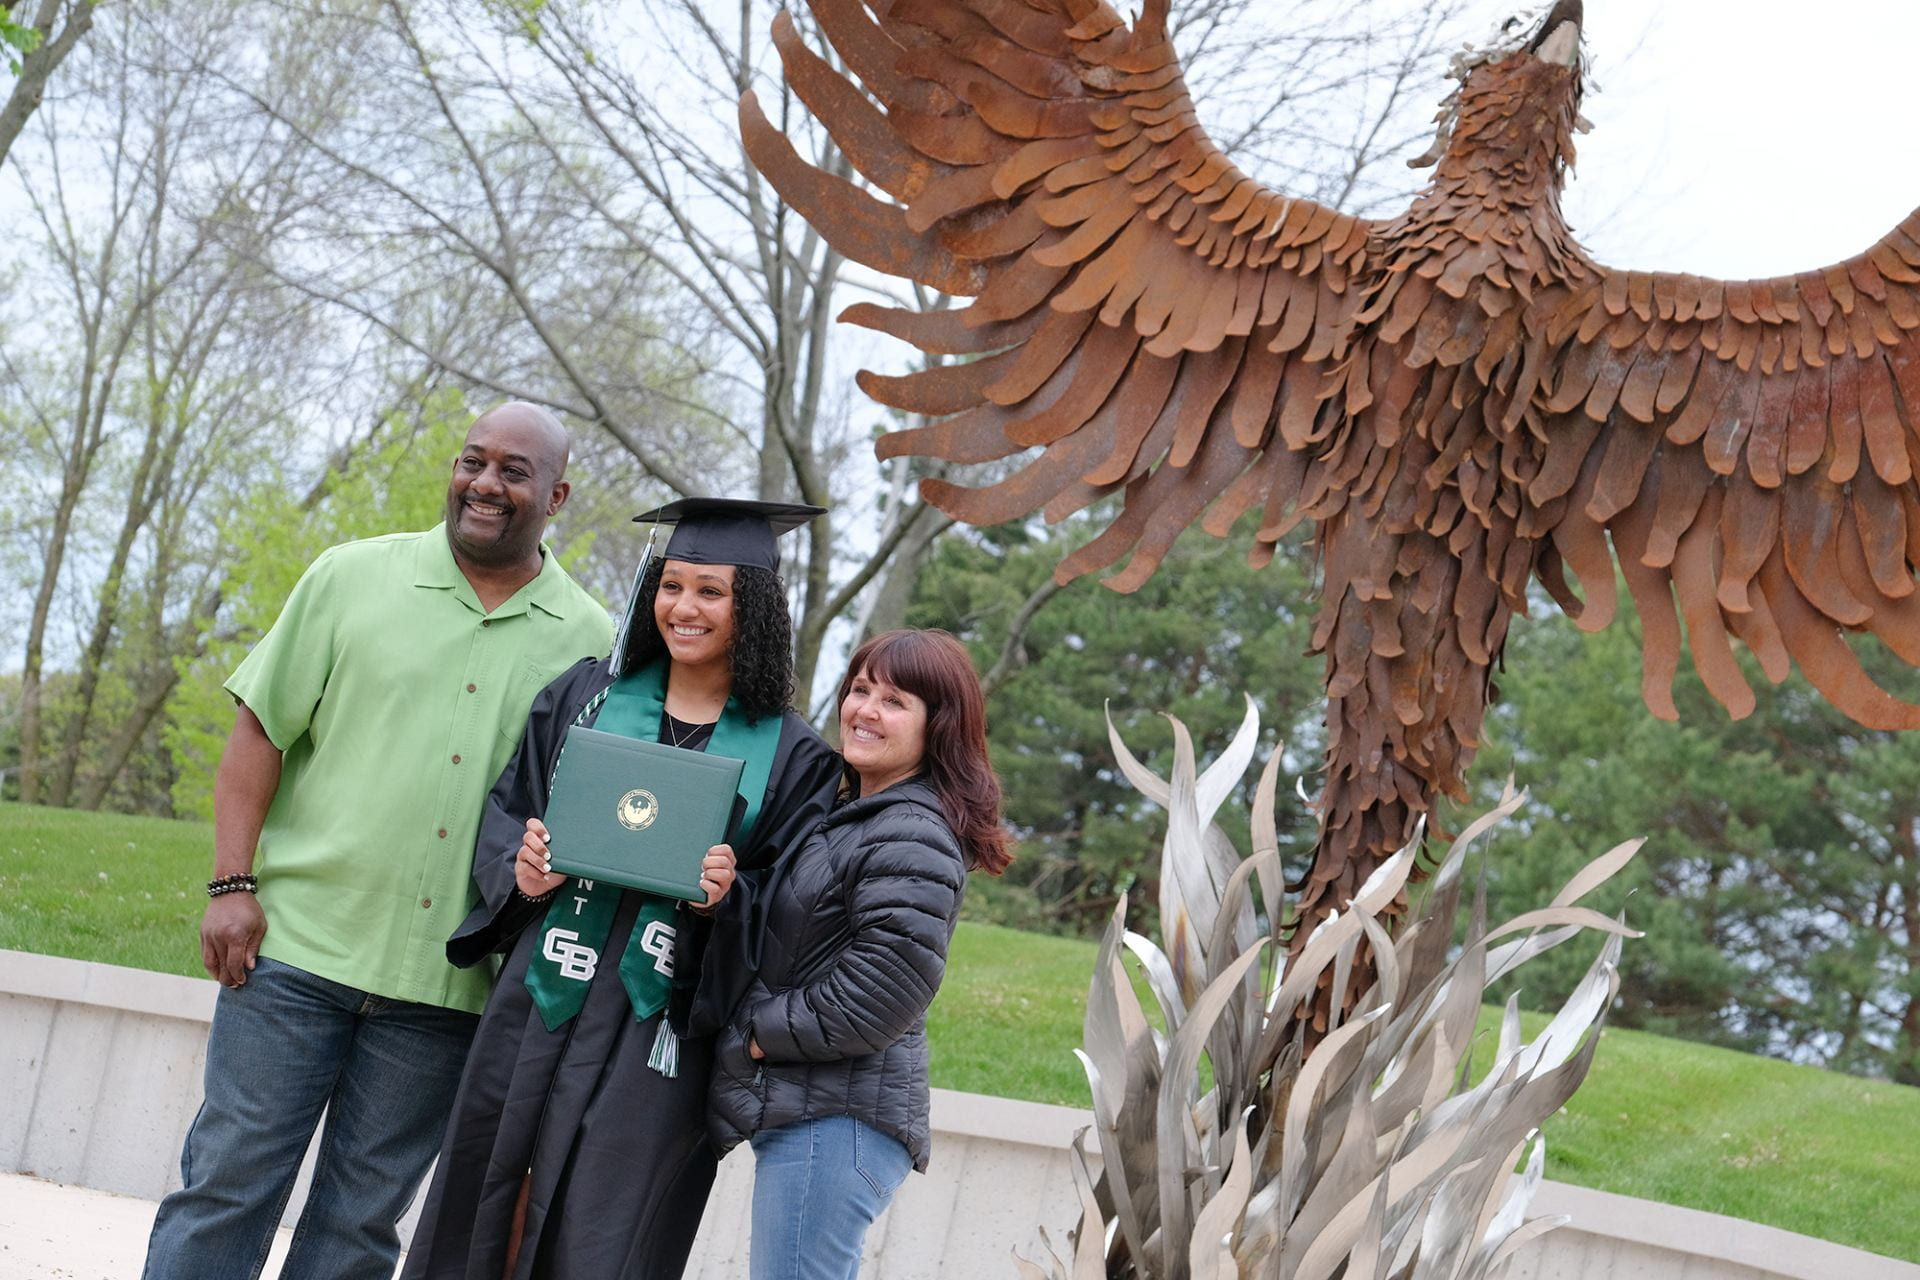 Graduate and family posing in front of the Phoenix Rising sculpture